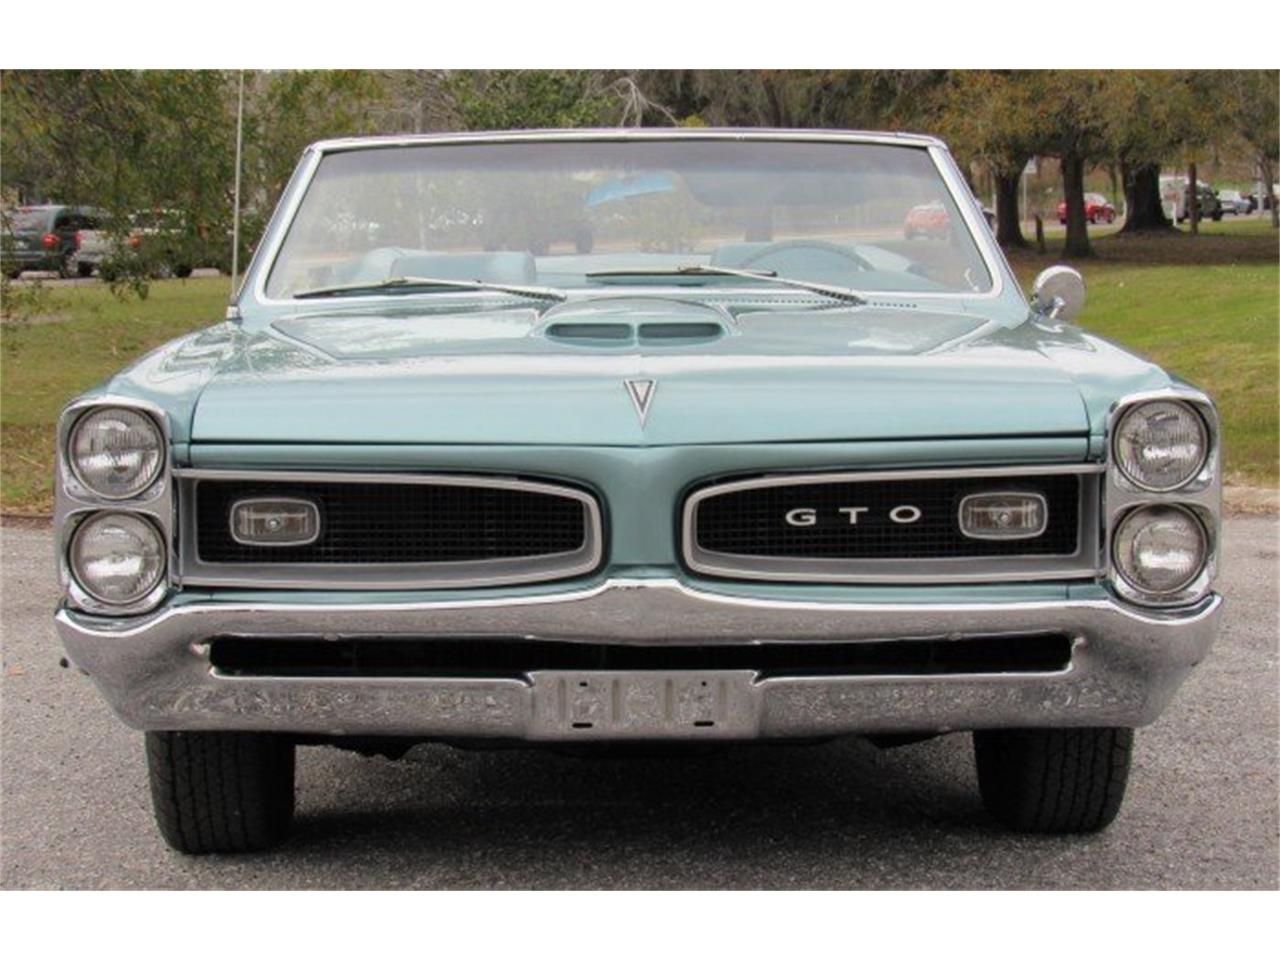 Large Picture of 1966 Pontiac GTO located in Punta Gorda Florida Auction Vehicle - PH0Z